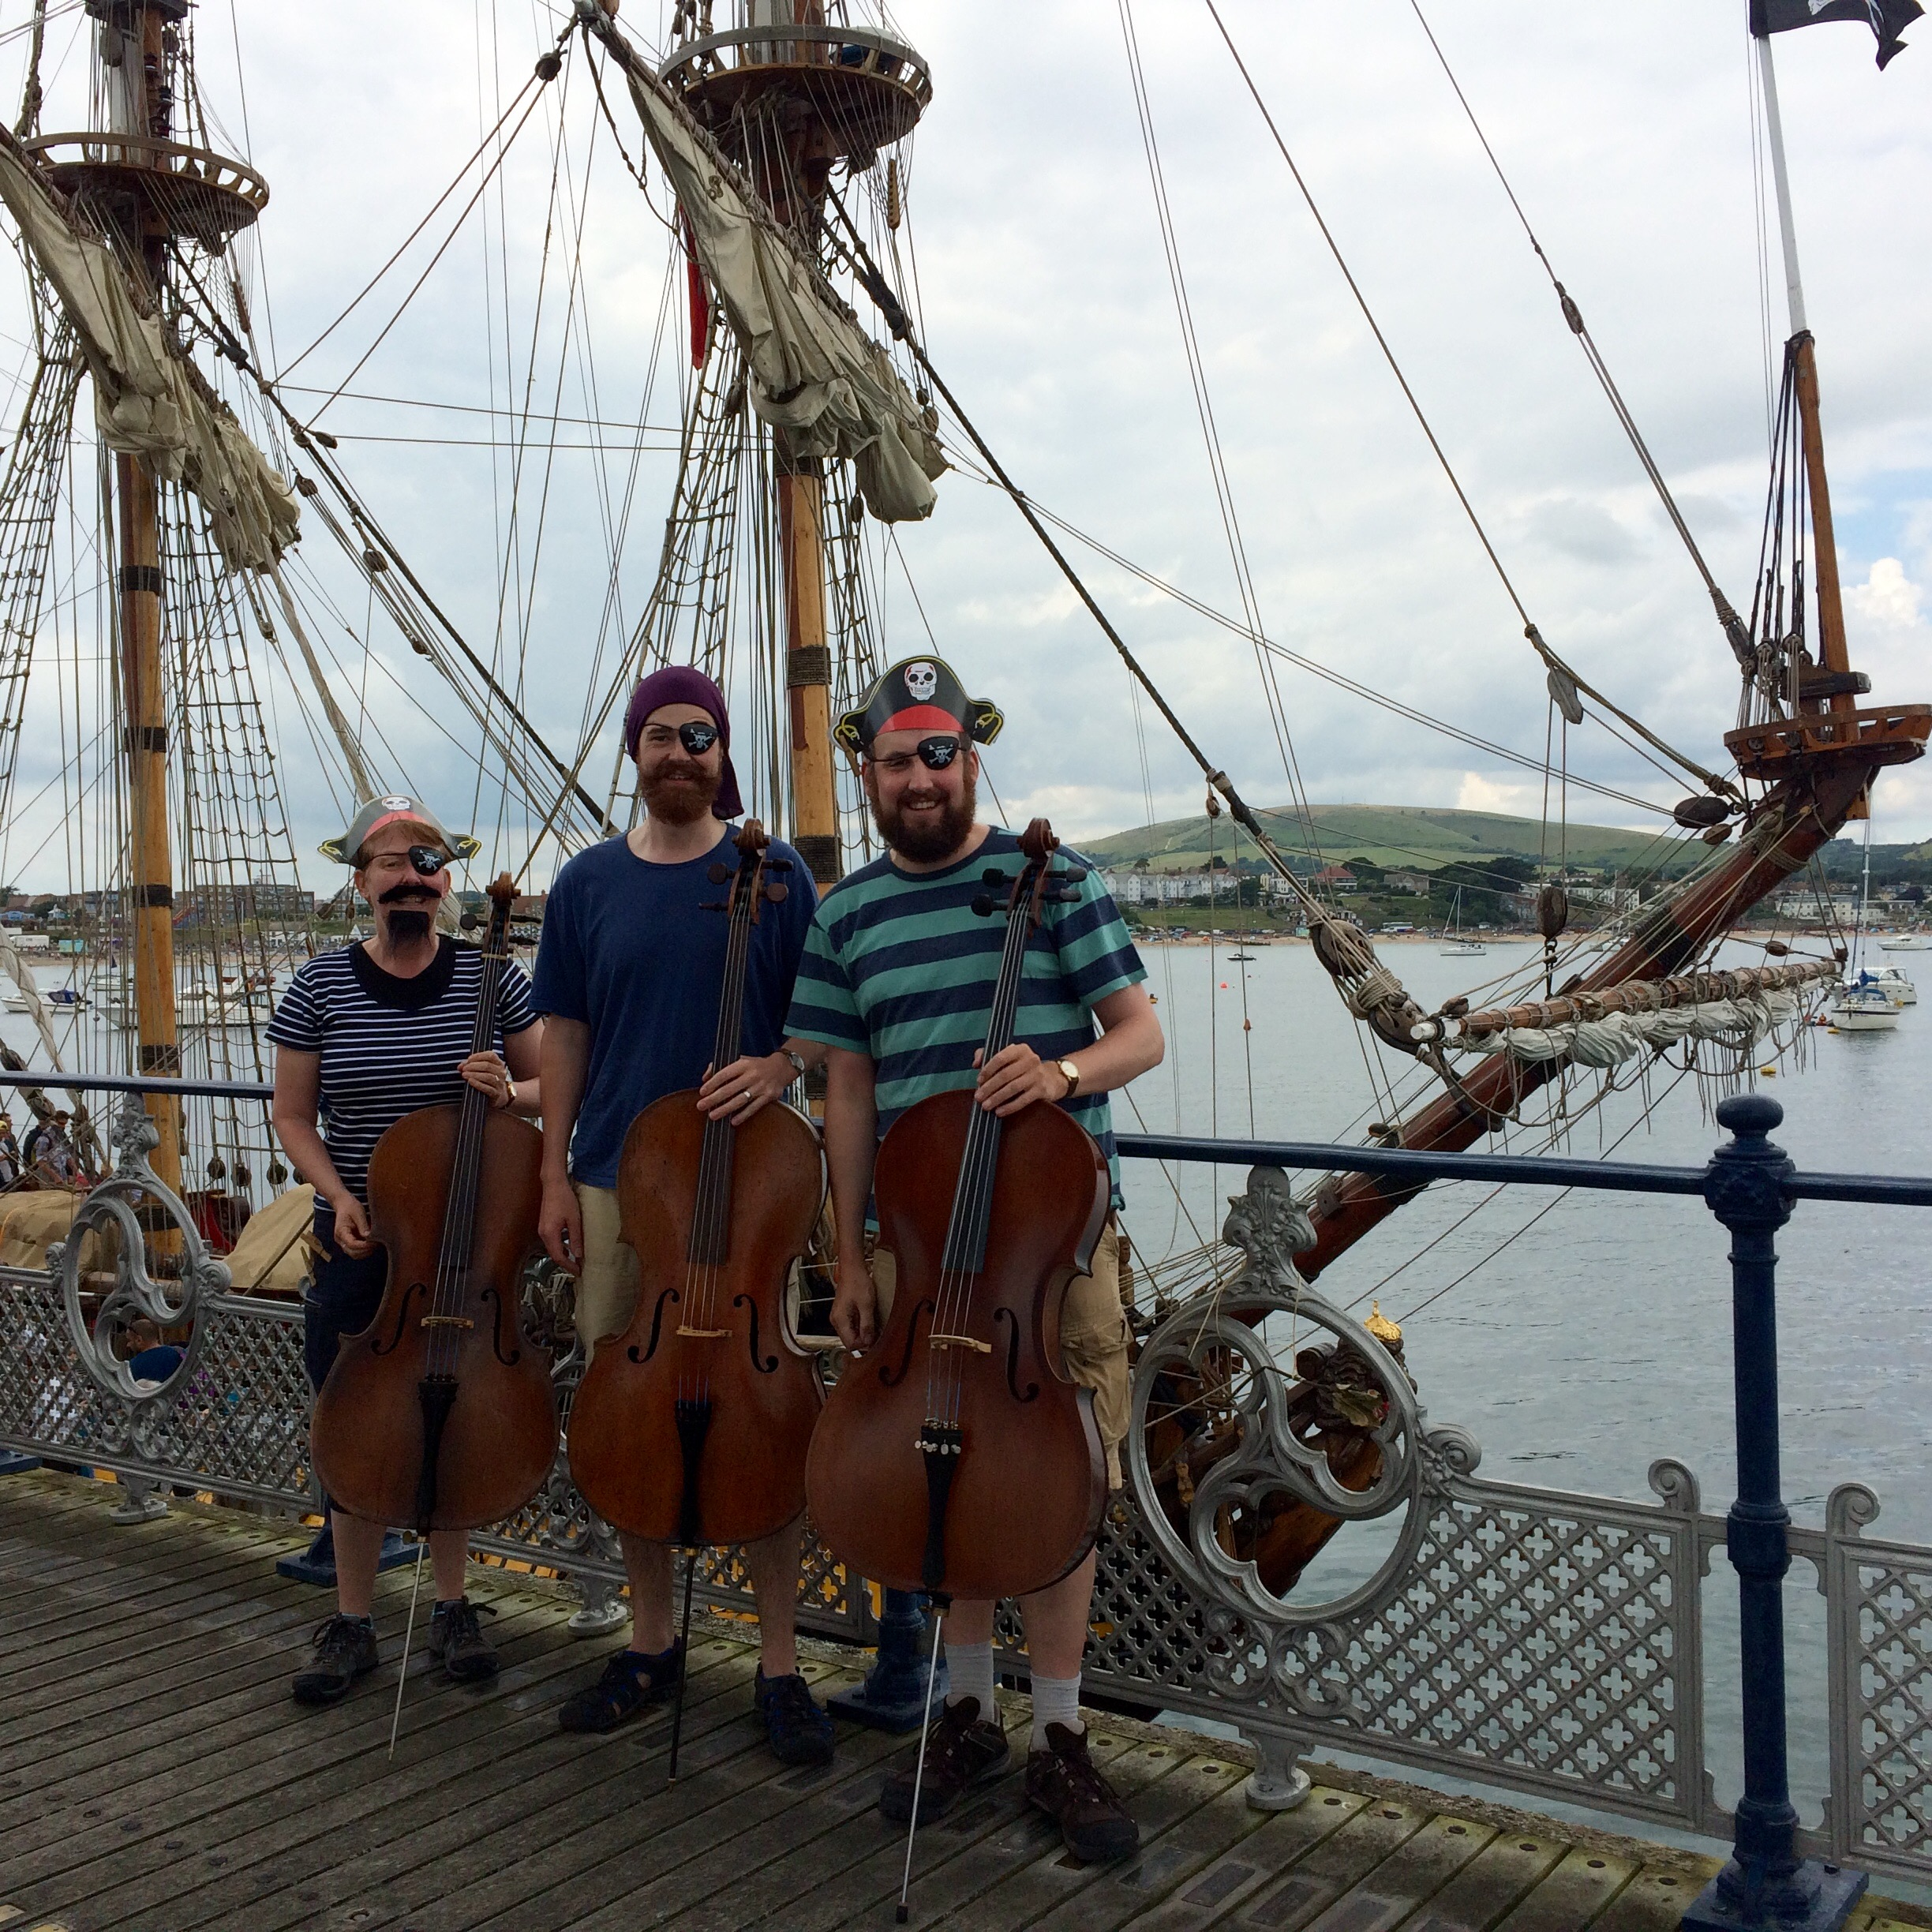 As Pirates on Swanage Pier